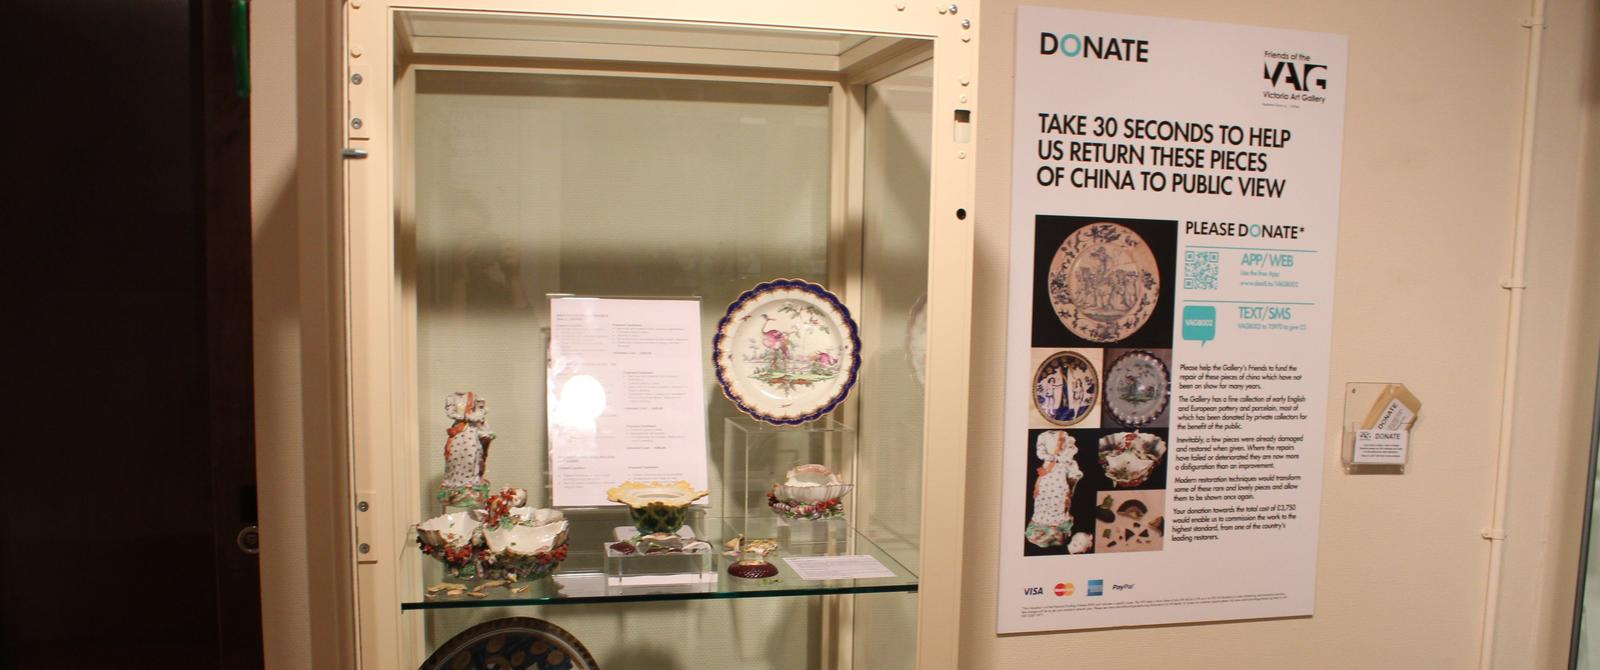 Image: Donate display at the Gallery